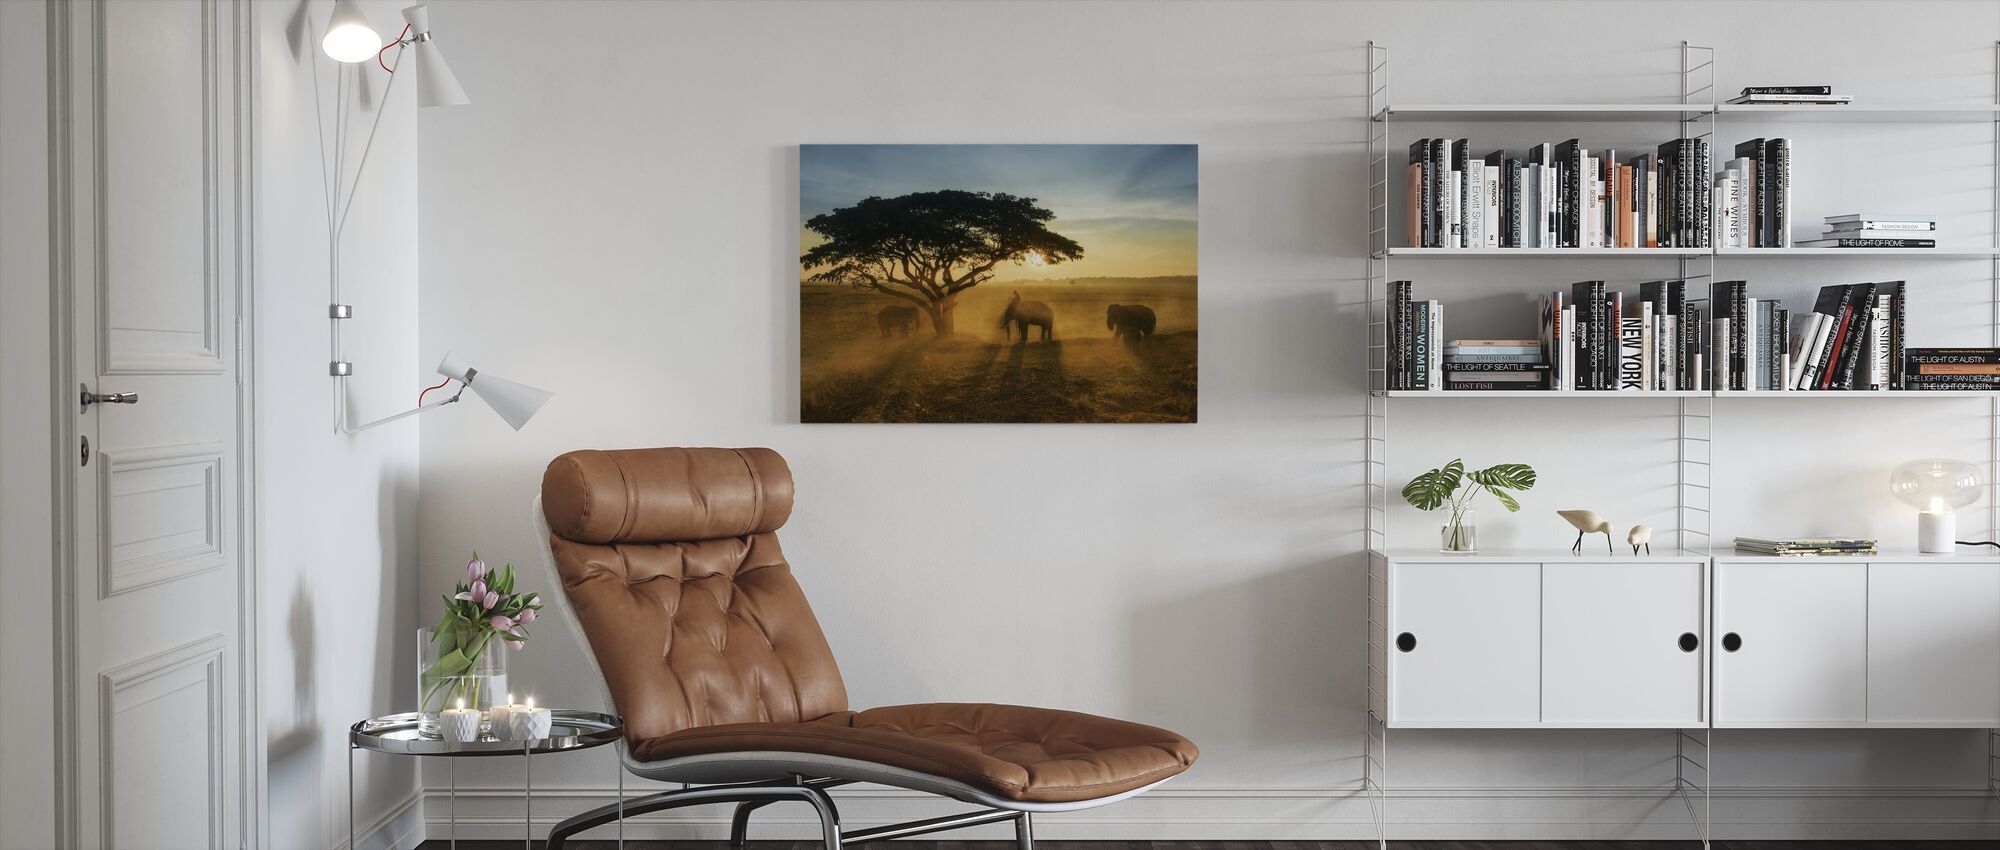 Ochtend olifant Home Town - Canvas print - Woonkamer